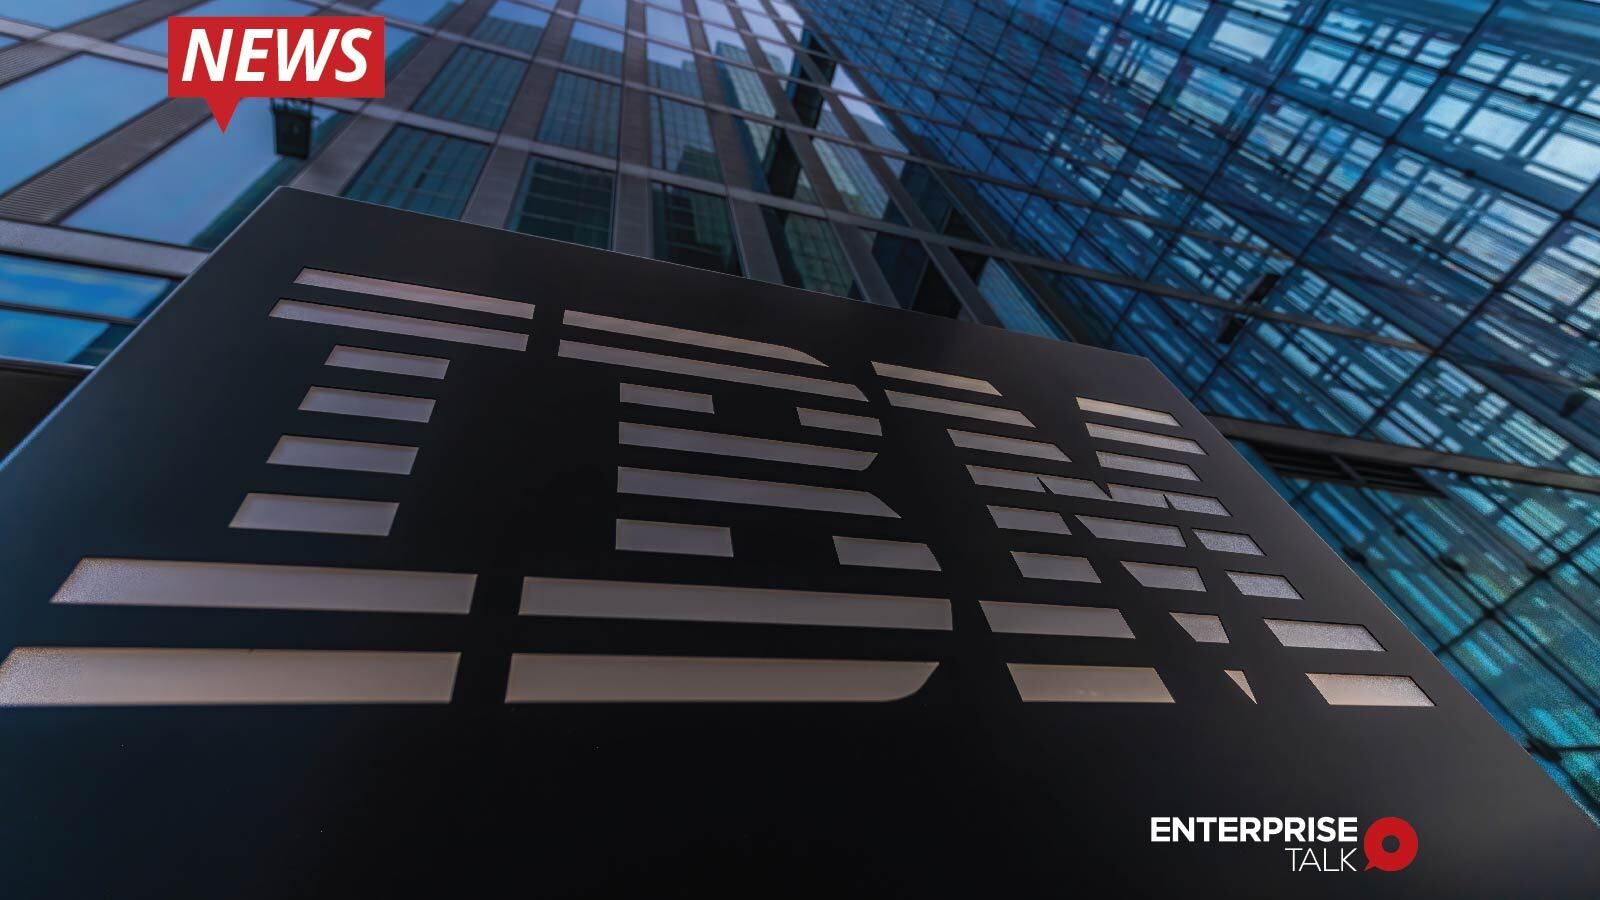 IBM-Breaks-New-Ground-with-its-Highest-Capacity-Flash-Storage-System-in-a-Small-Form-Factor-_2_